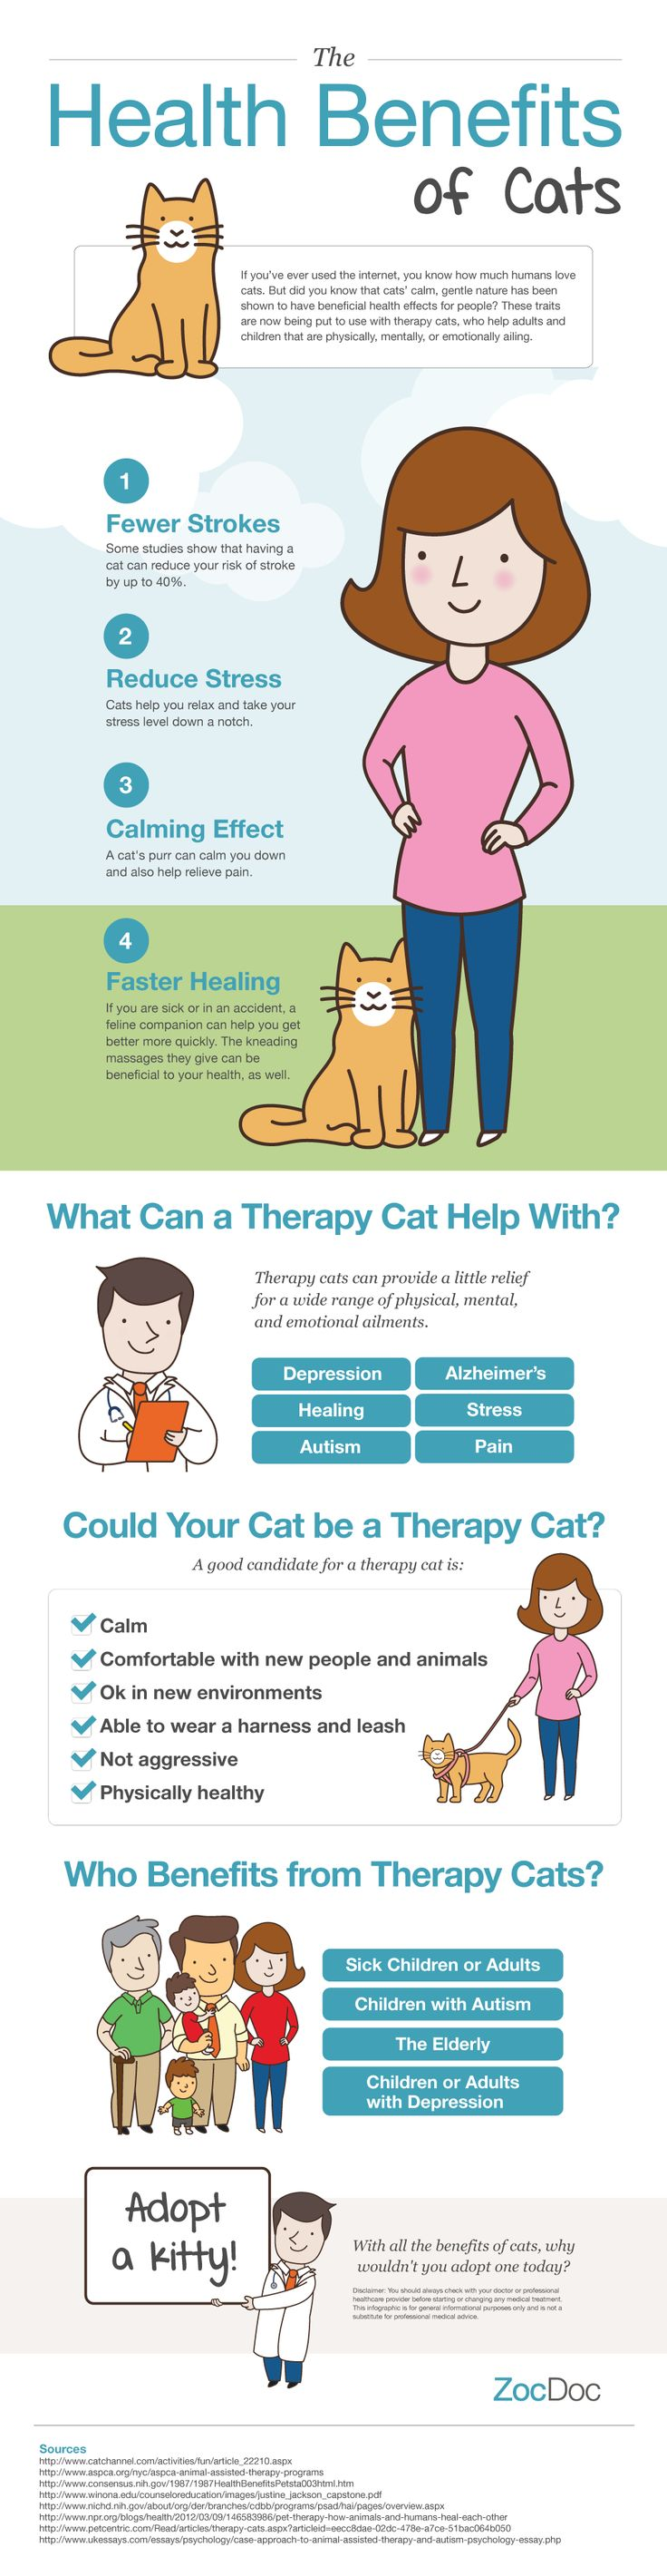 Did you know that Tenth Life has an Animal Assisted Therapy Program?